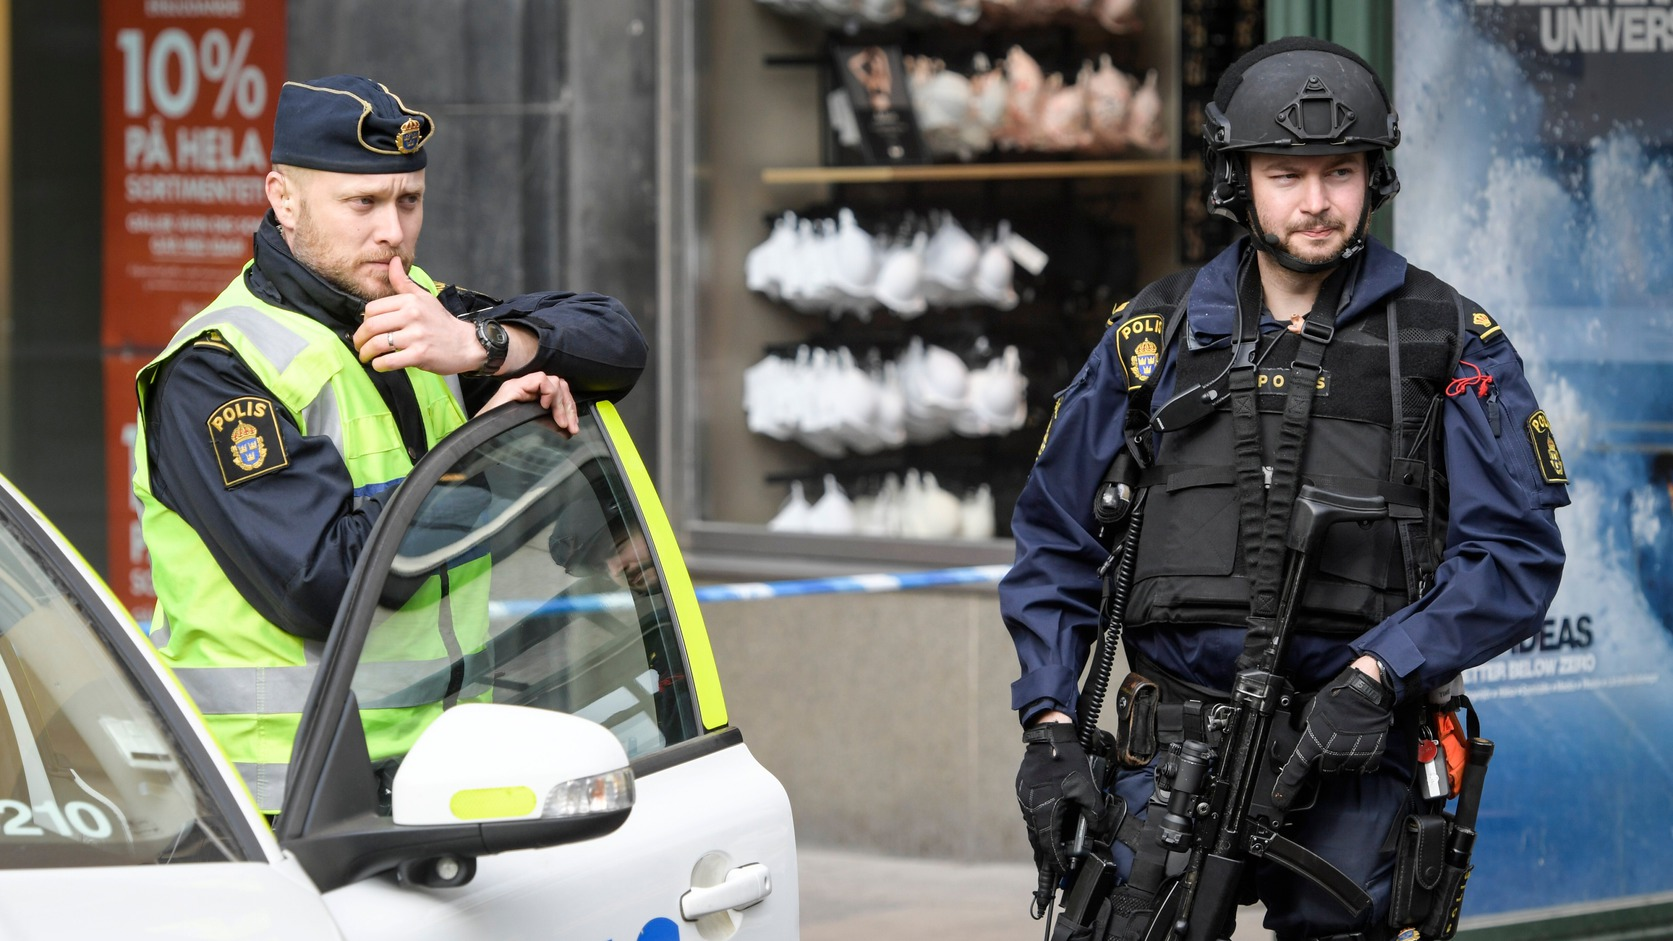 epa05896487 Police near the scene of a truck attack in central Stockholm, Sweden, 08 April 2017, the morning after the hijacked beer truck ploughed into pedestrians on Drottninggatan and crashed into Ahlens department store, killing four people, injuring 15 others.  EPA/ANDERS WIKLUND  SWEDEN OUT